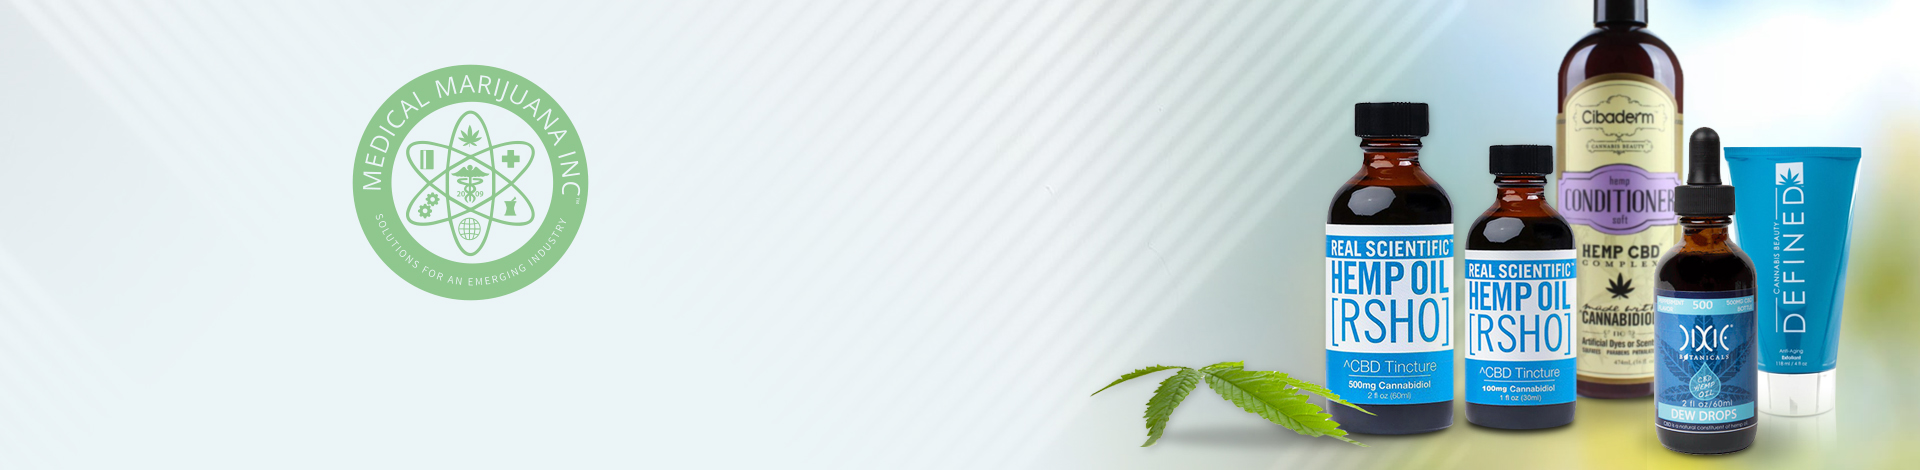 medical marijuana cbd banner